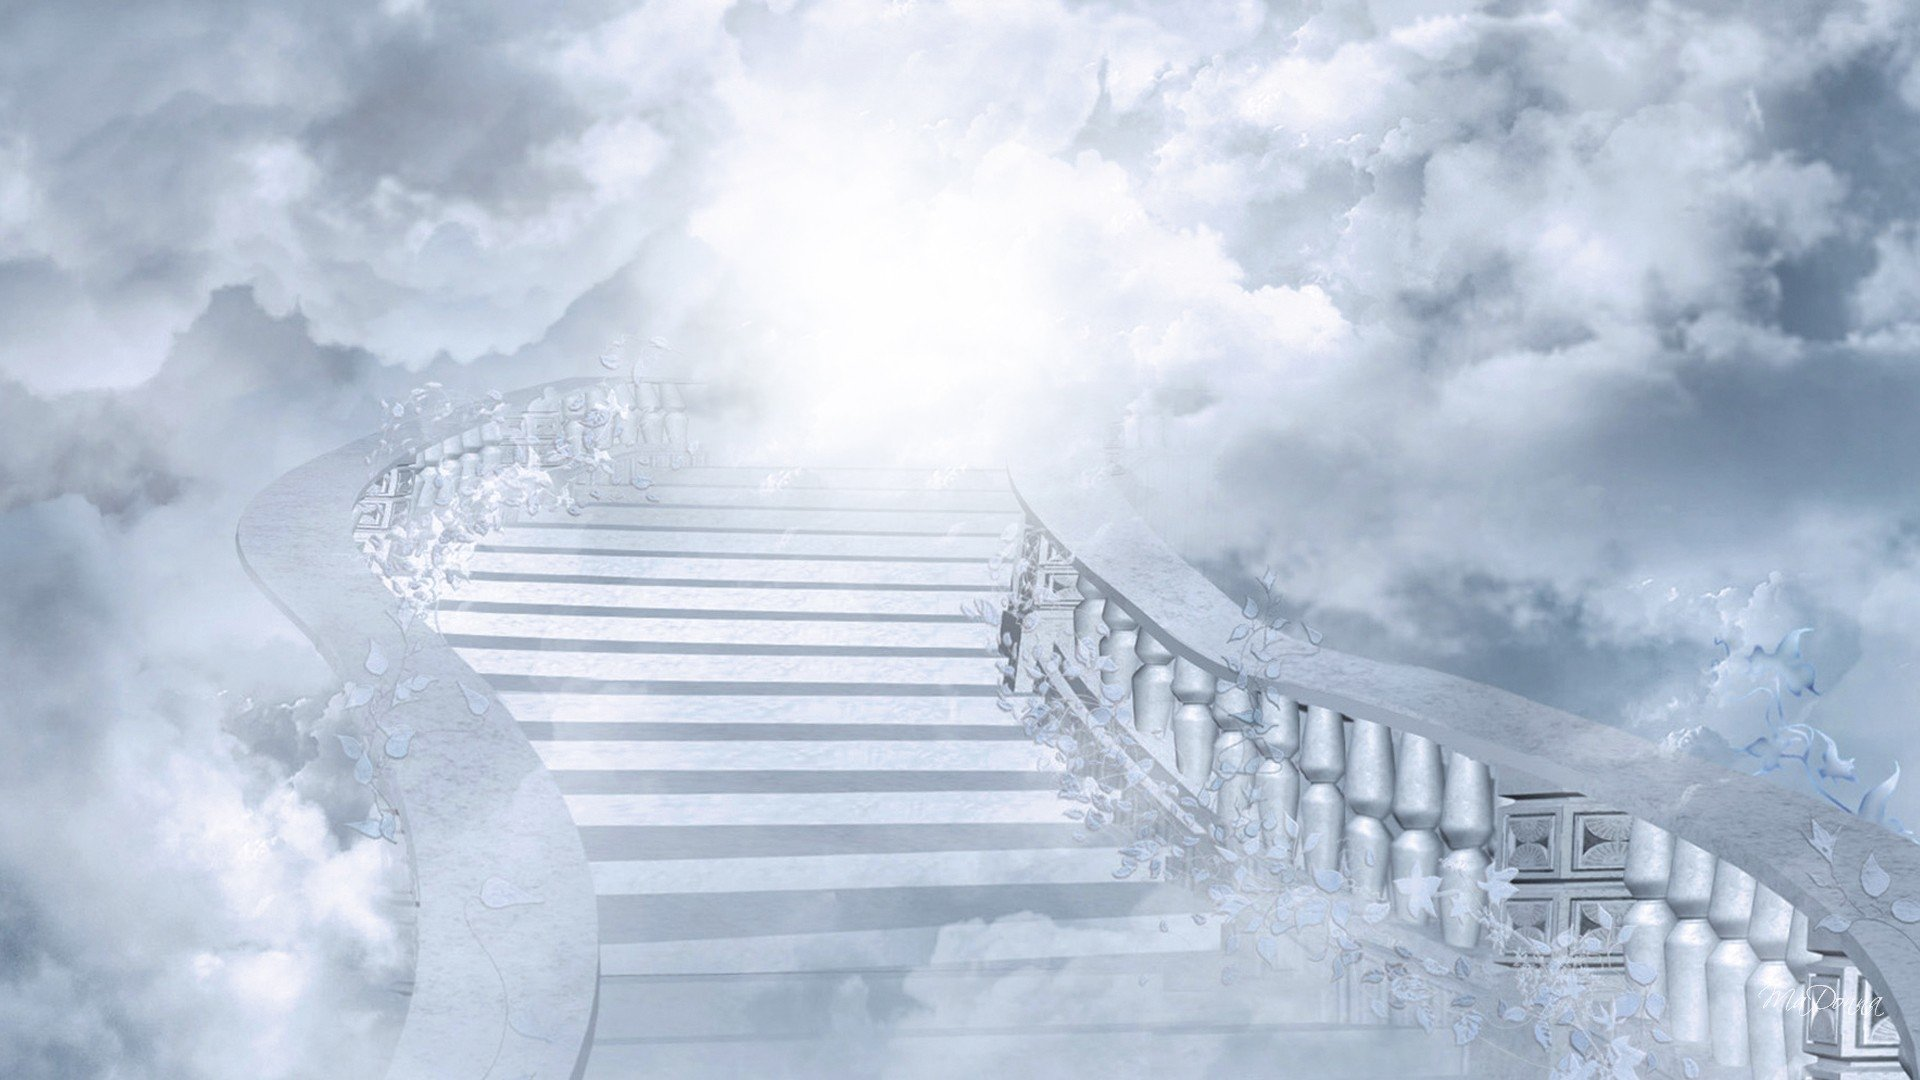 Stairway To Heaven Full HD Wallpaper And Background Image